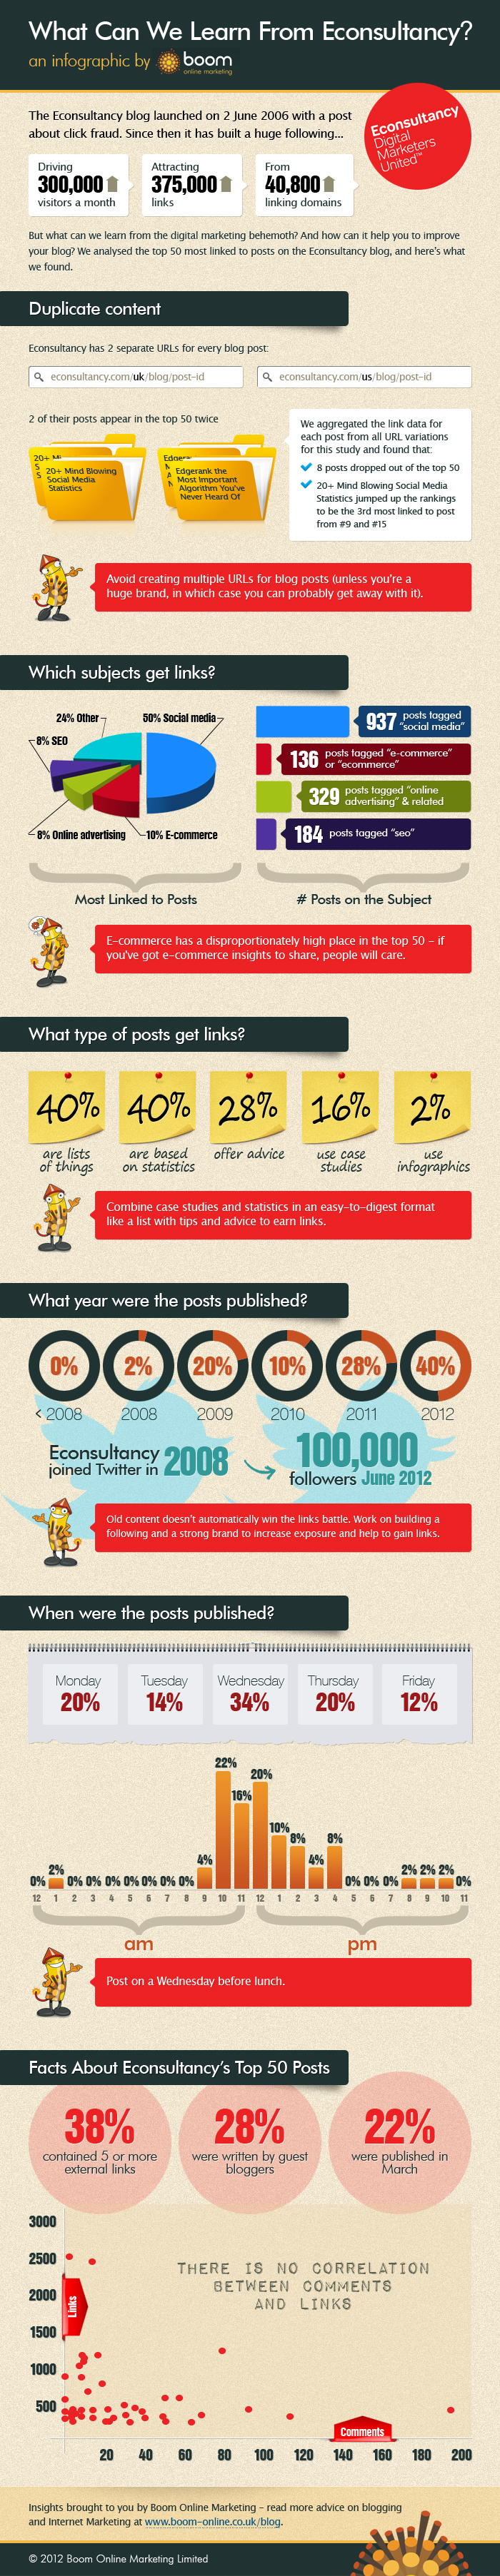 What Can We Learn from Econsultancy - an infographic